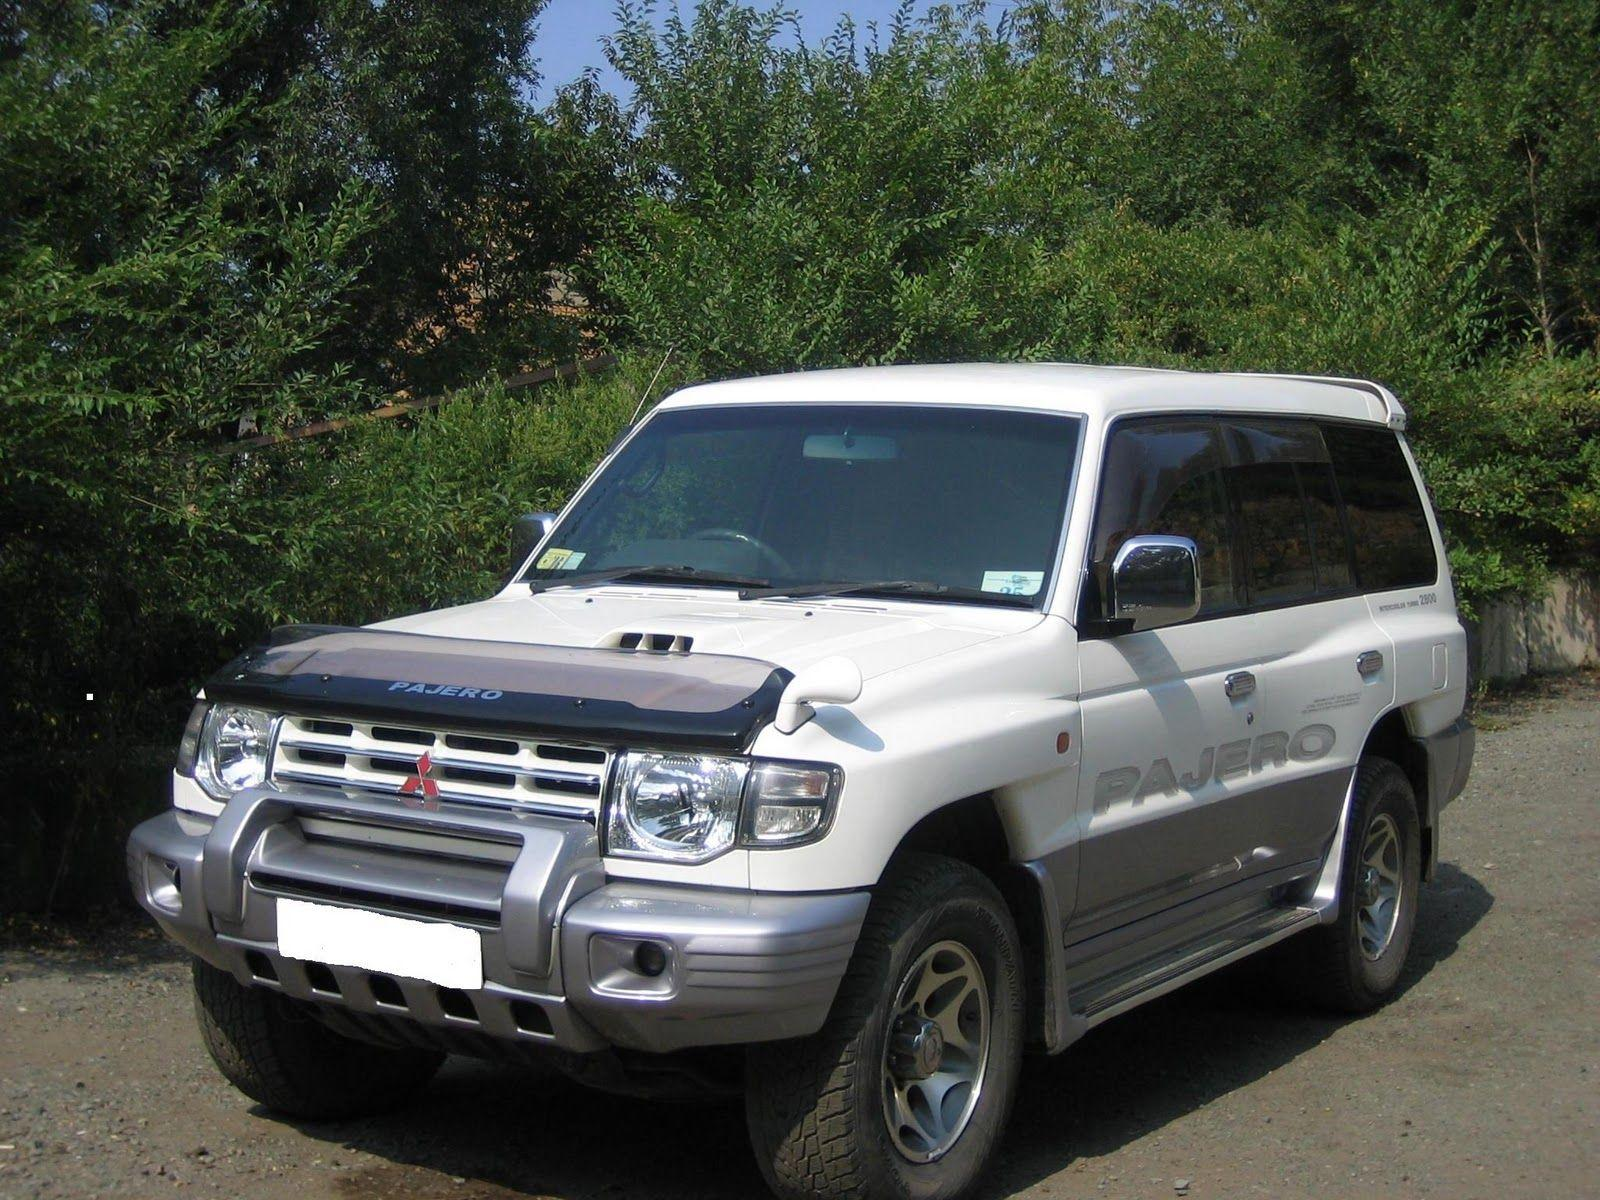 Pajero Indian Luxuary car Wallpapers, Gallery, Pictures, Images ...